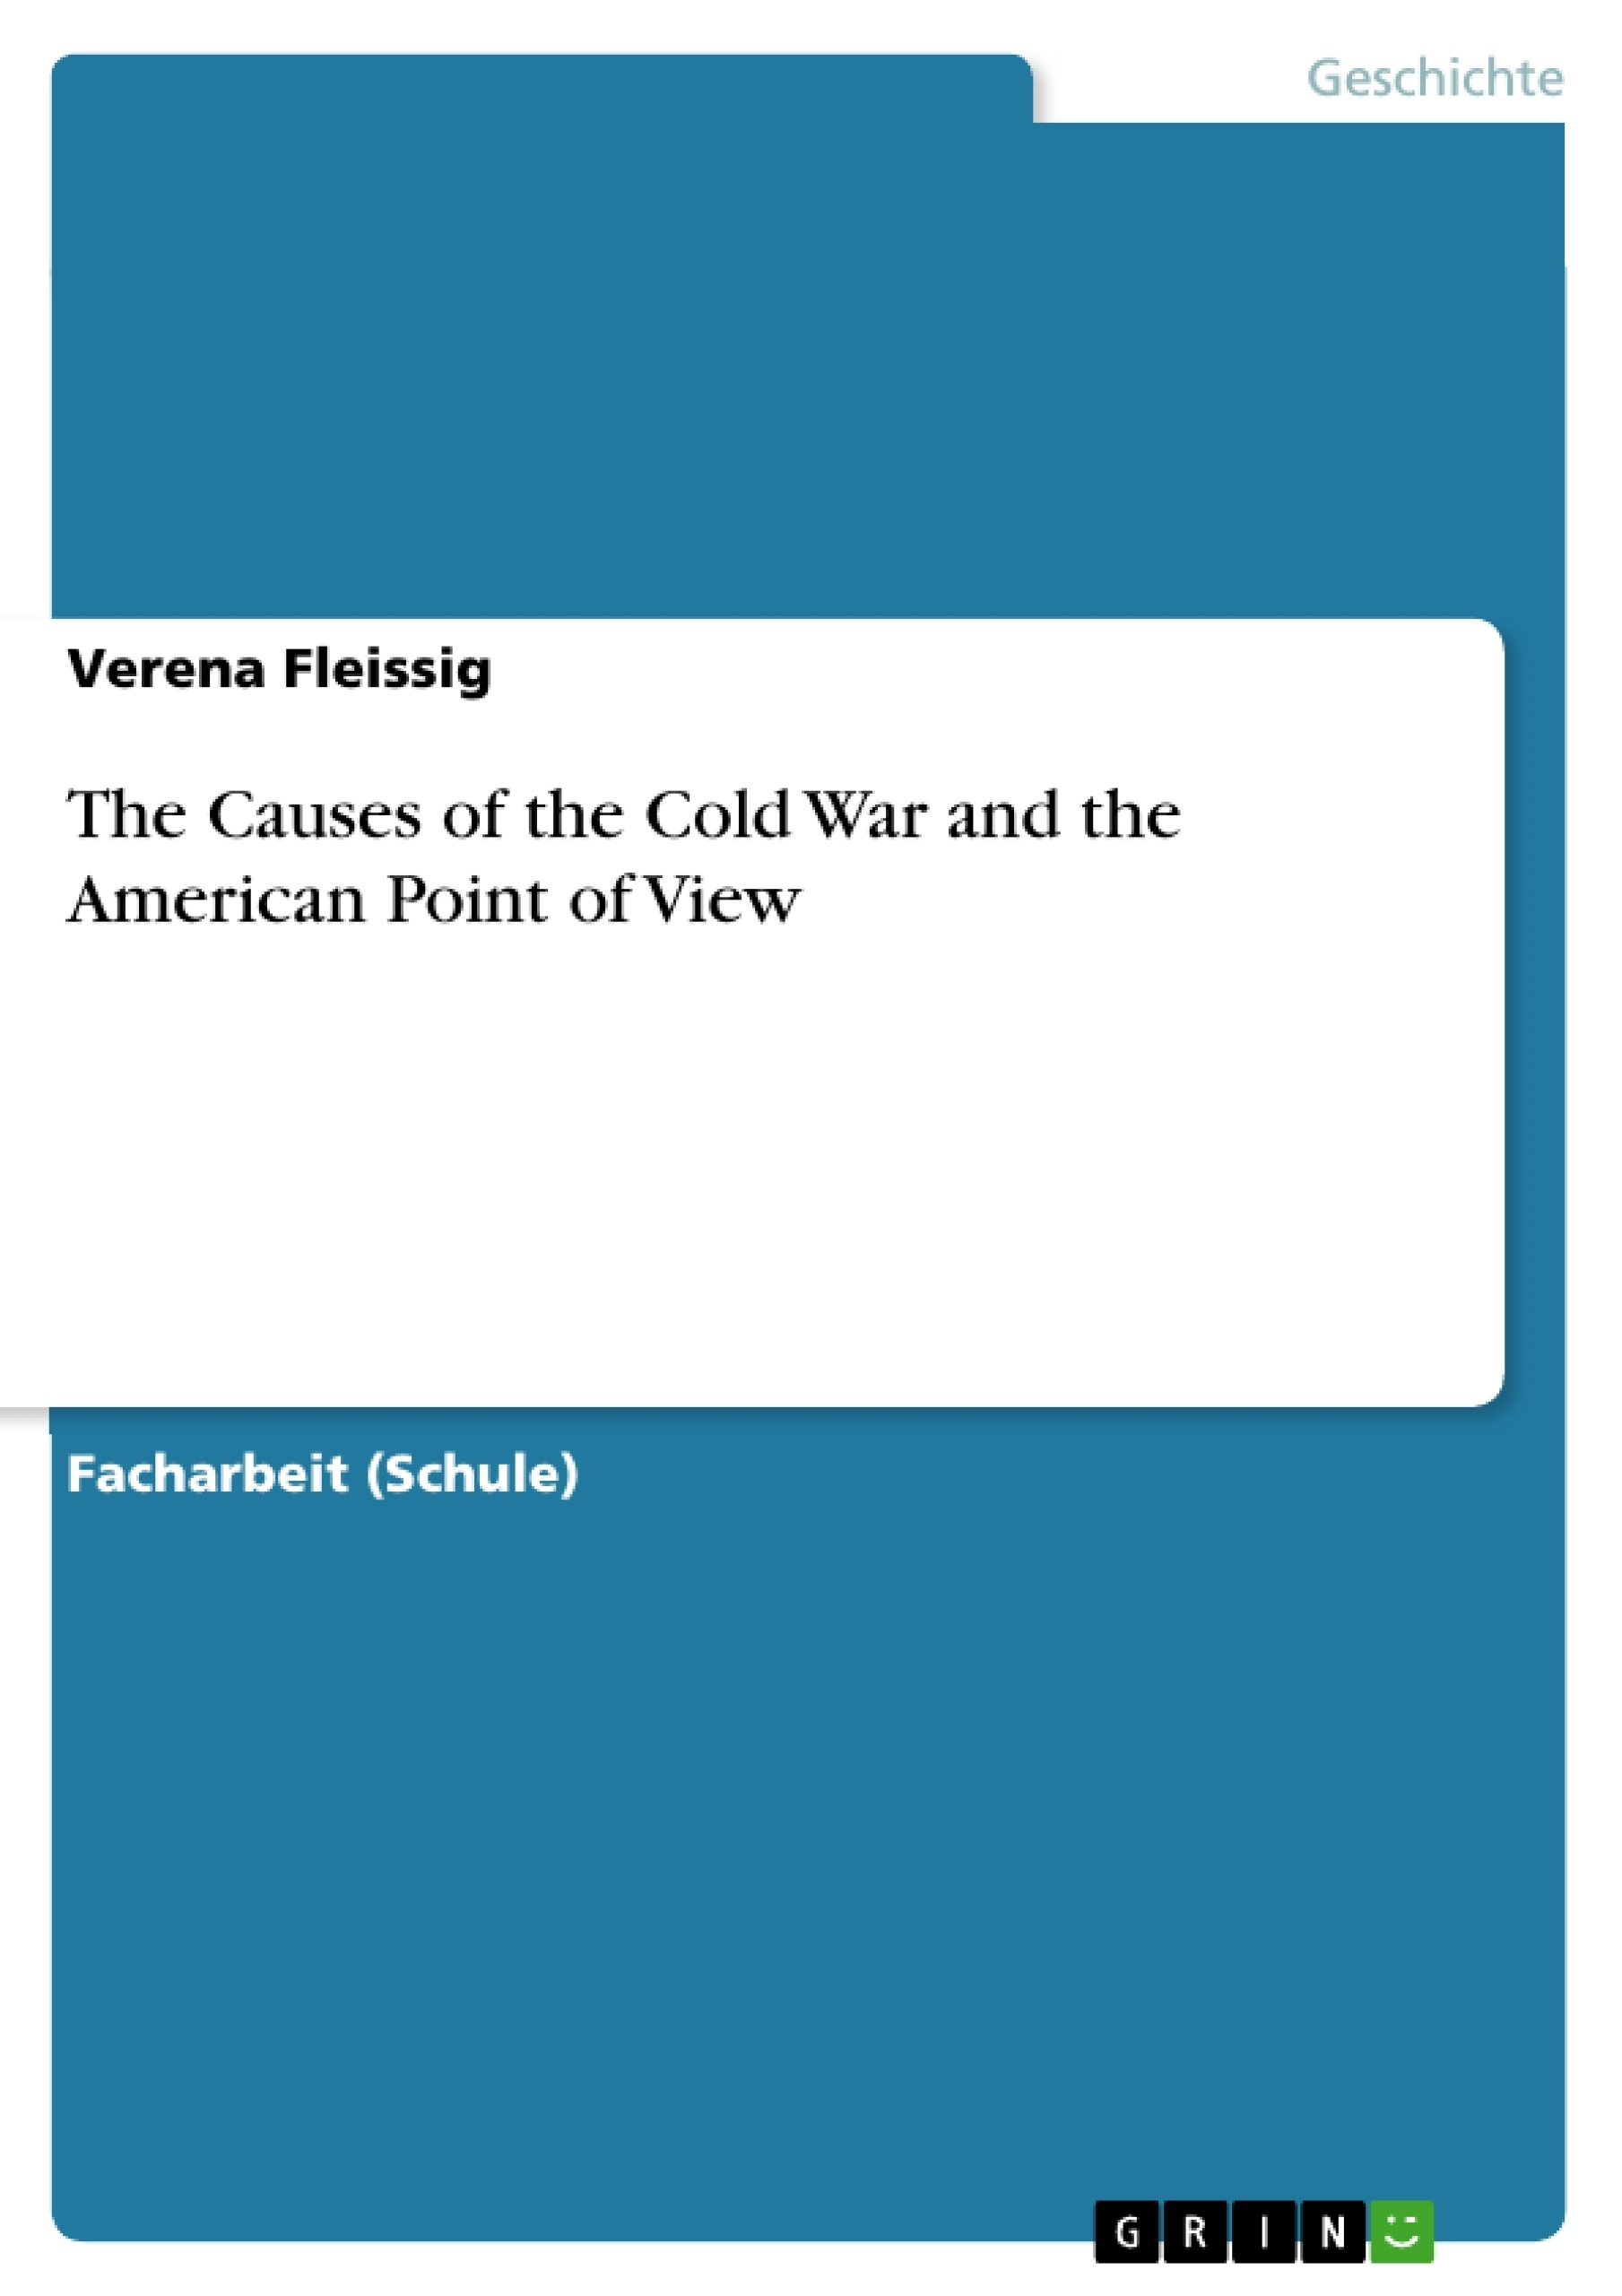 the causes of the cold war and the american point of view the causes of the cold war and the american point of view masterarbeit hausarbeit bachelorarbeit veroumlffentlichen